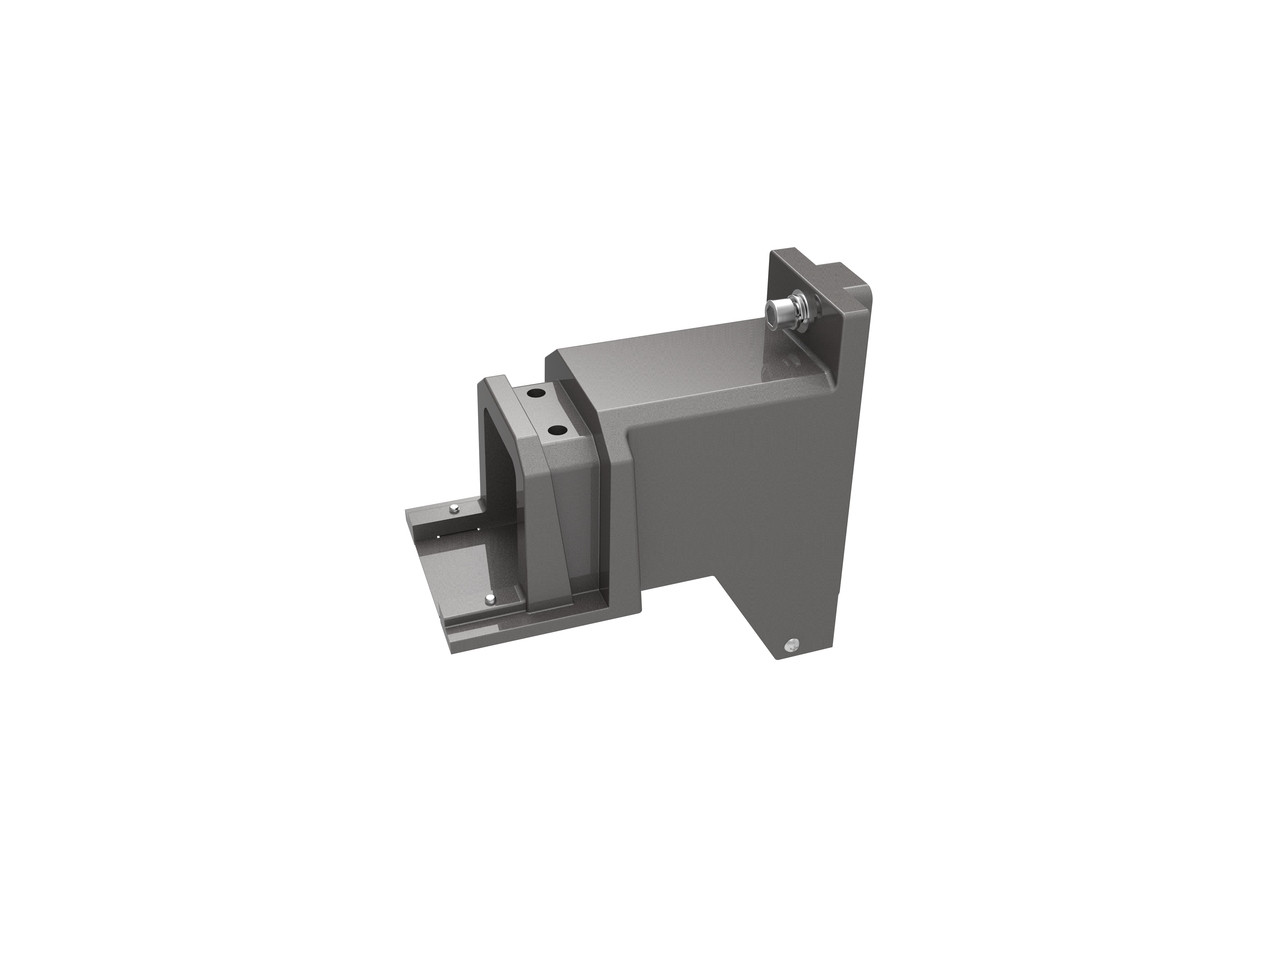 Direct Square or Round Mount